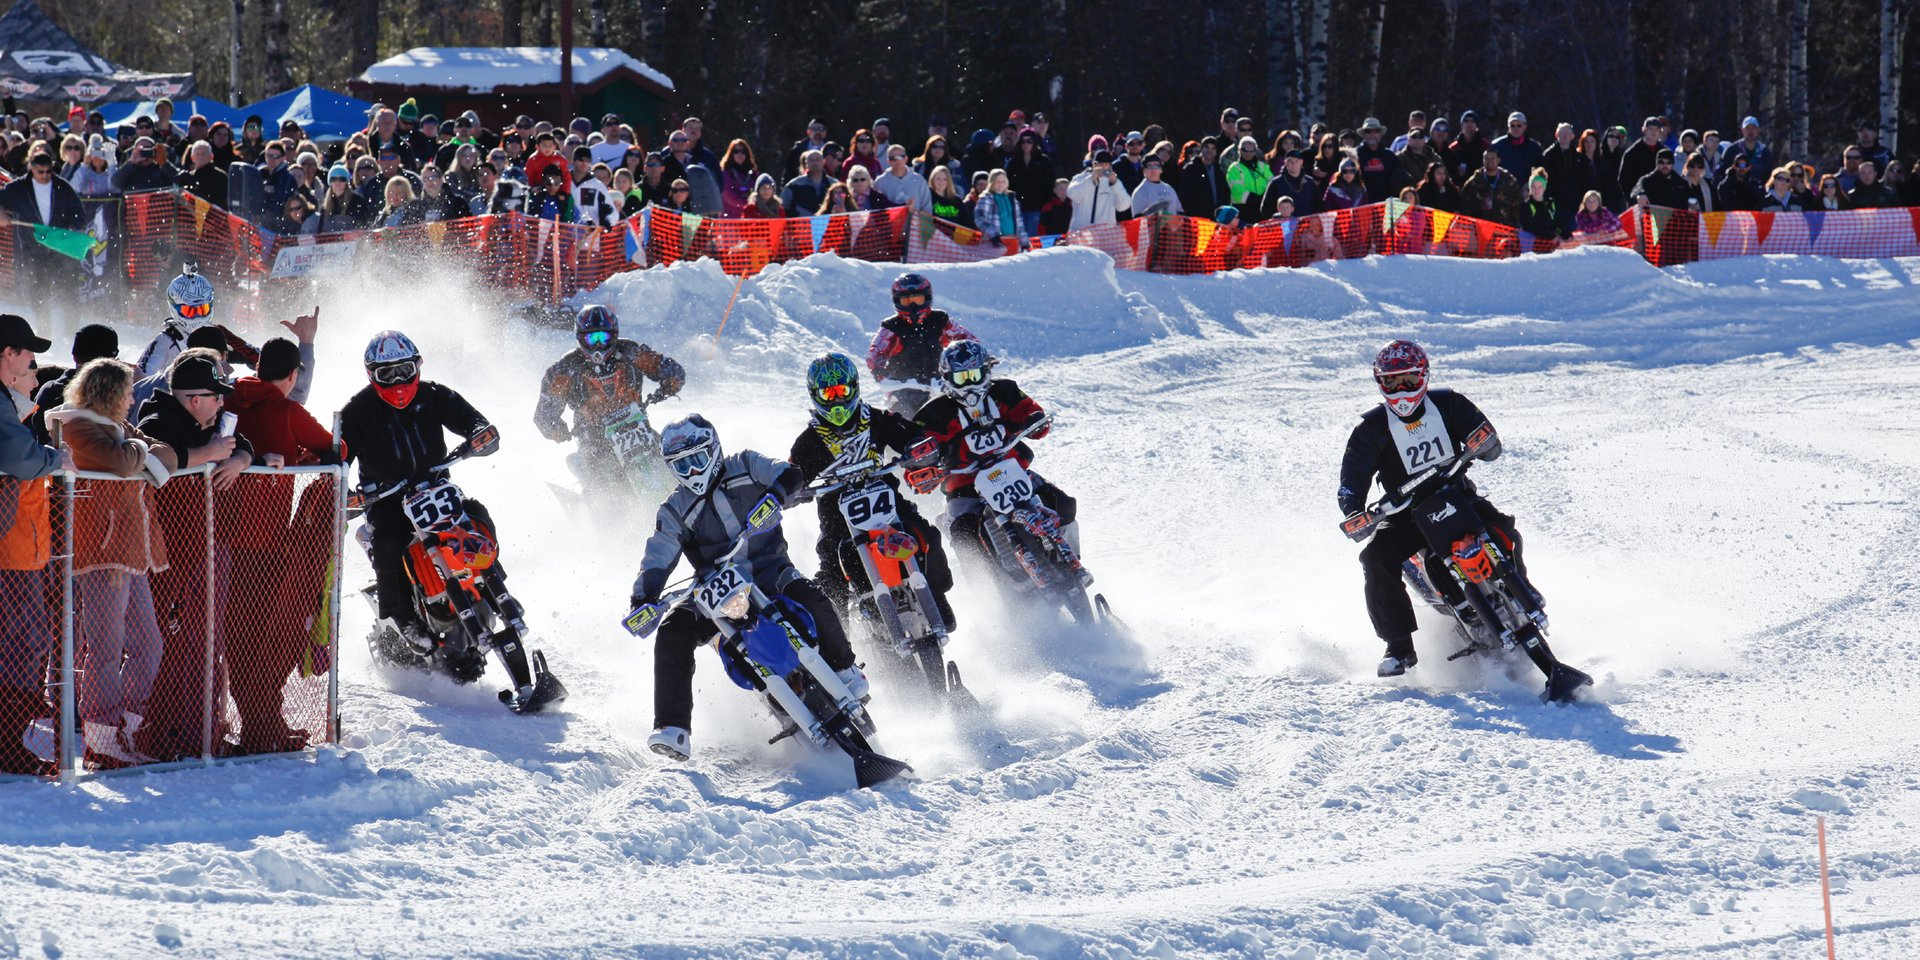 Best time for McCall Winter Carnival in Idaho 2020